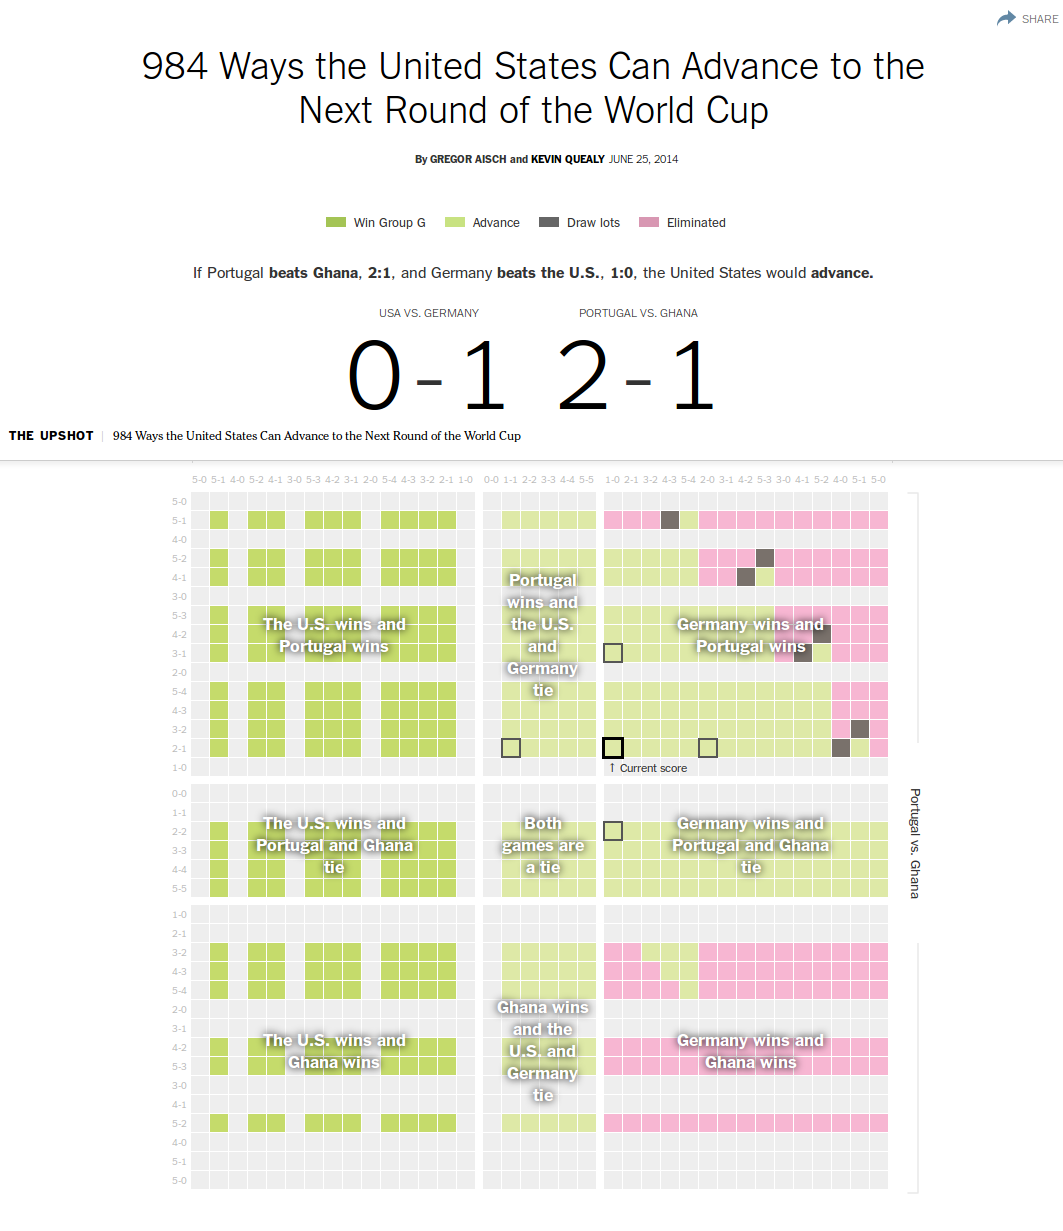 984 Ways the United States Can Advance to the Next Round of the World Cup